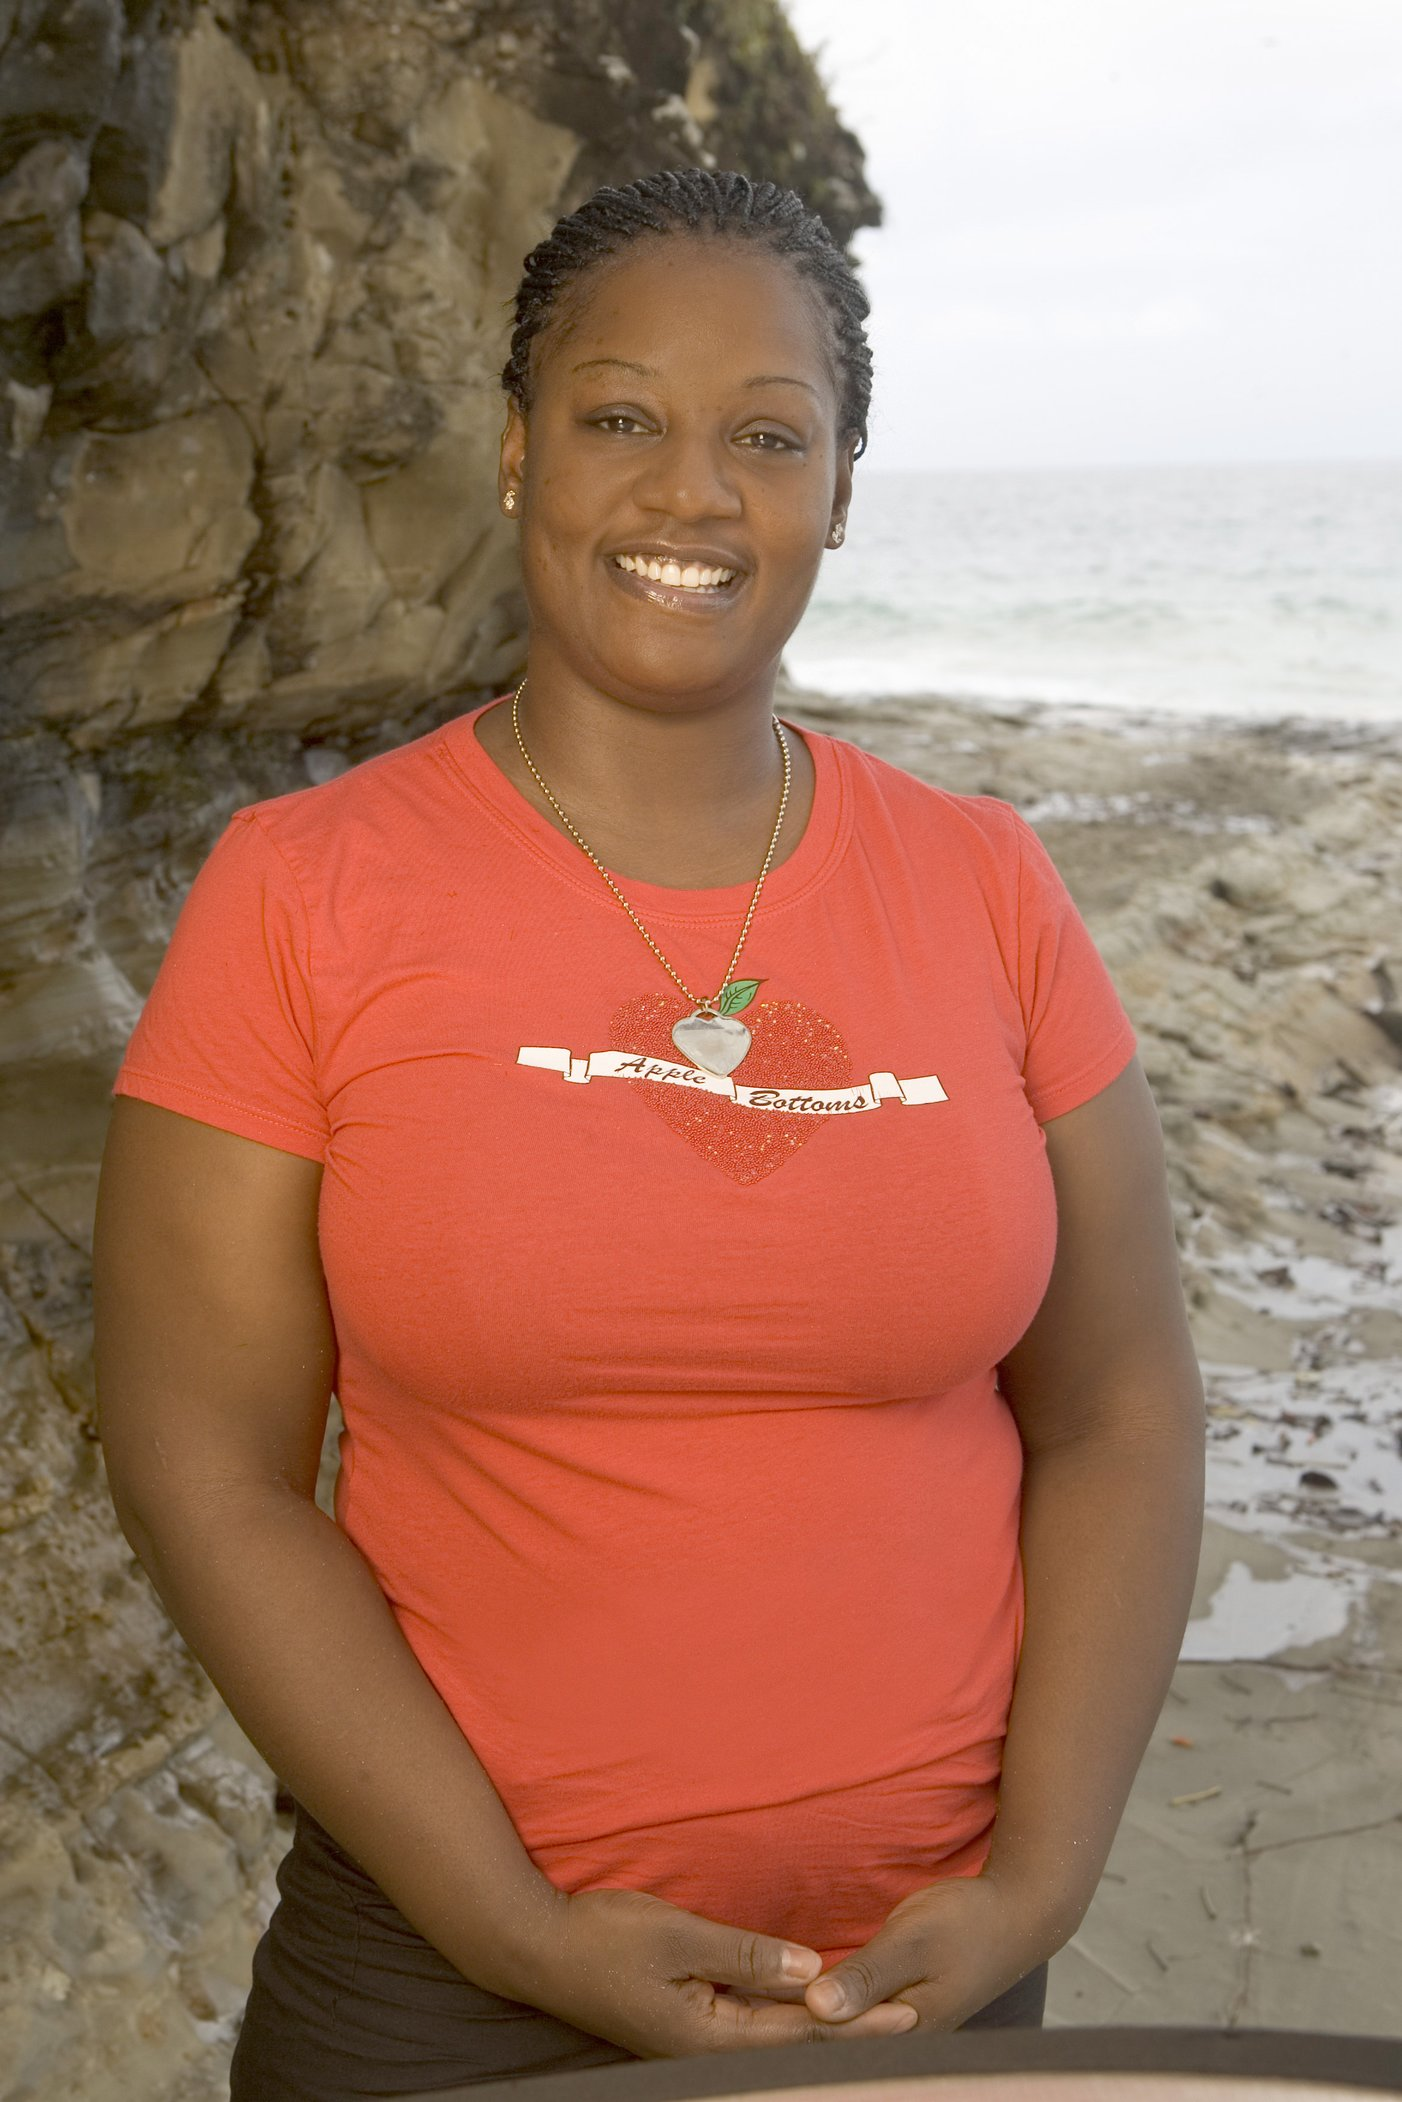 Cirie Fields from Survivor